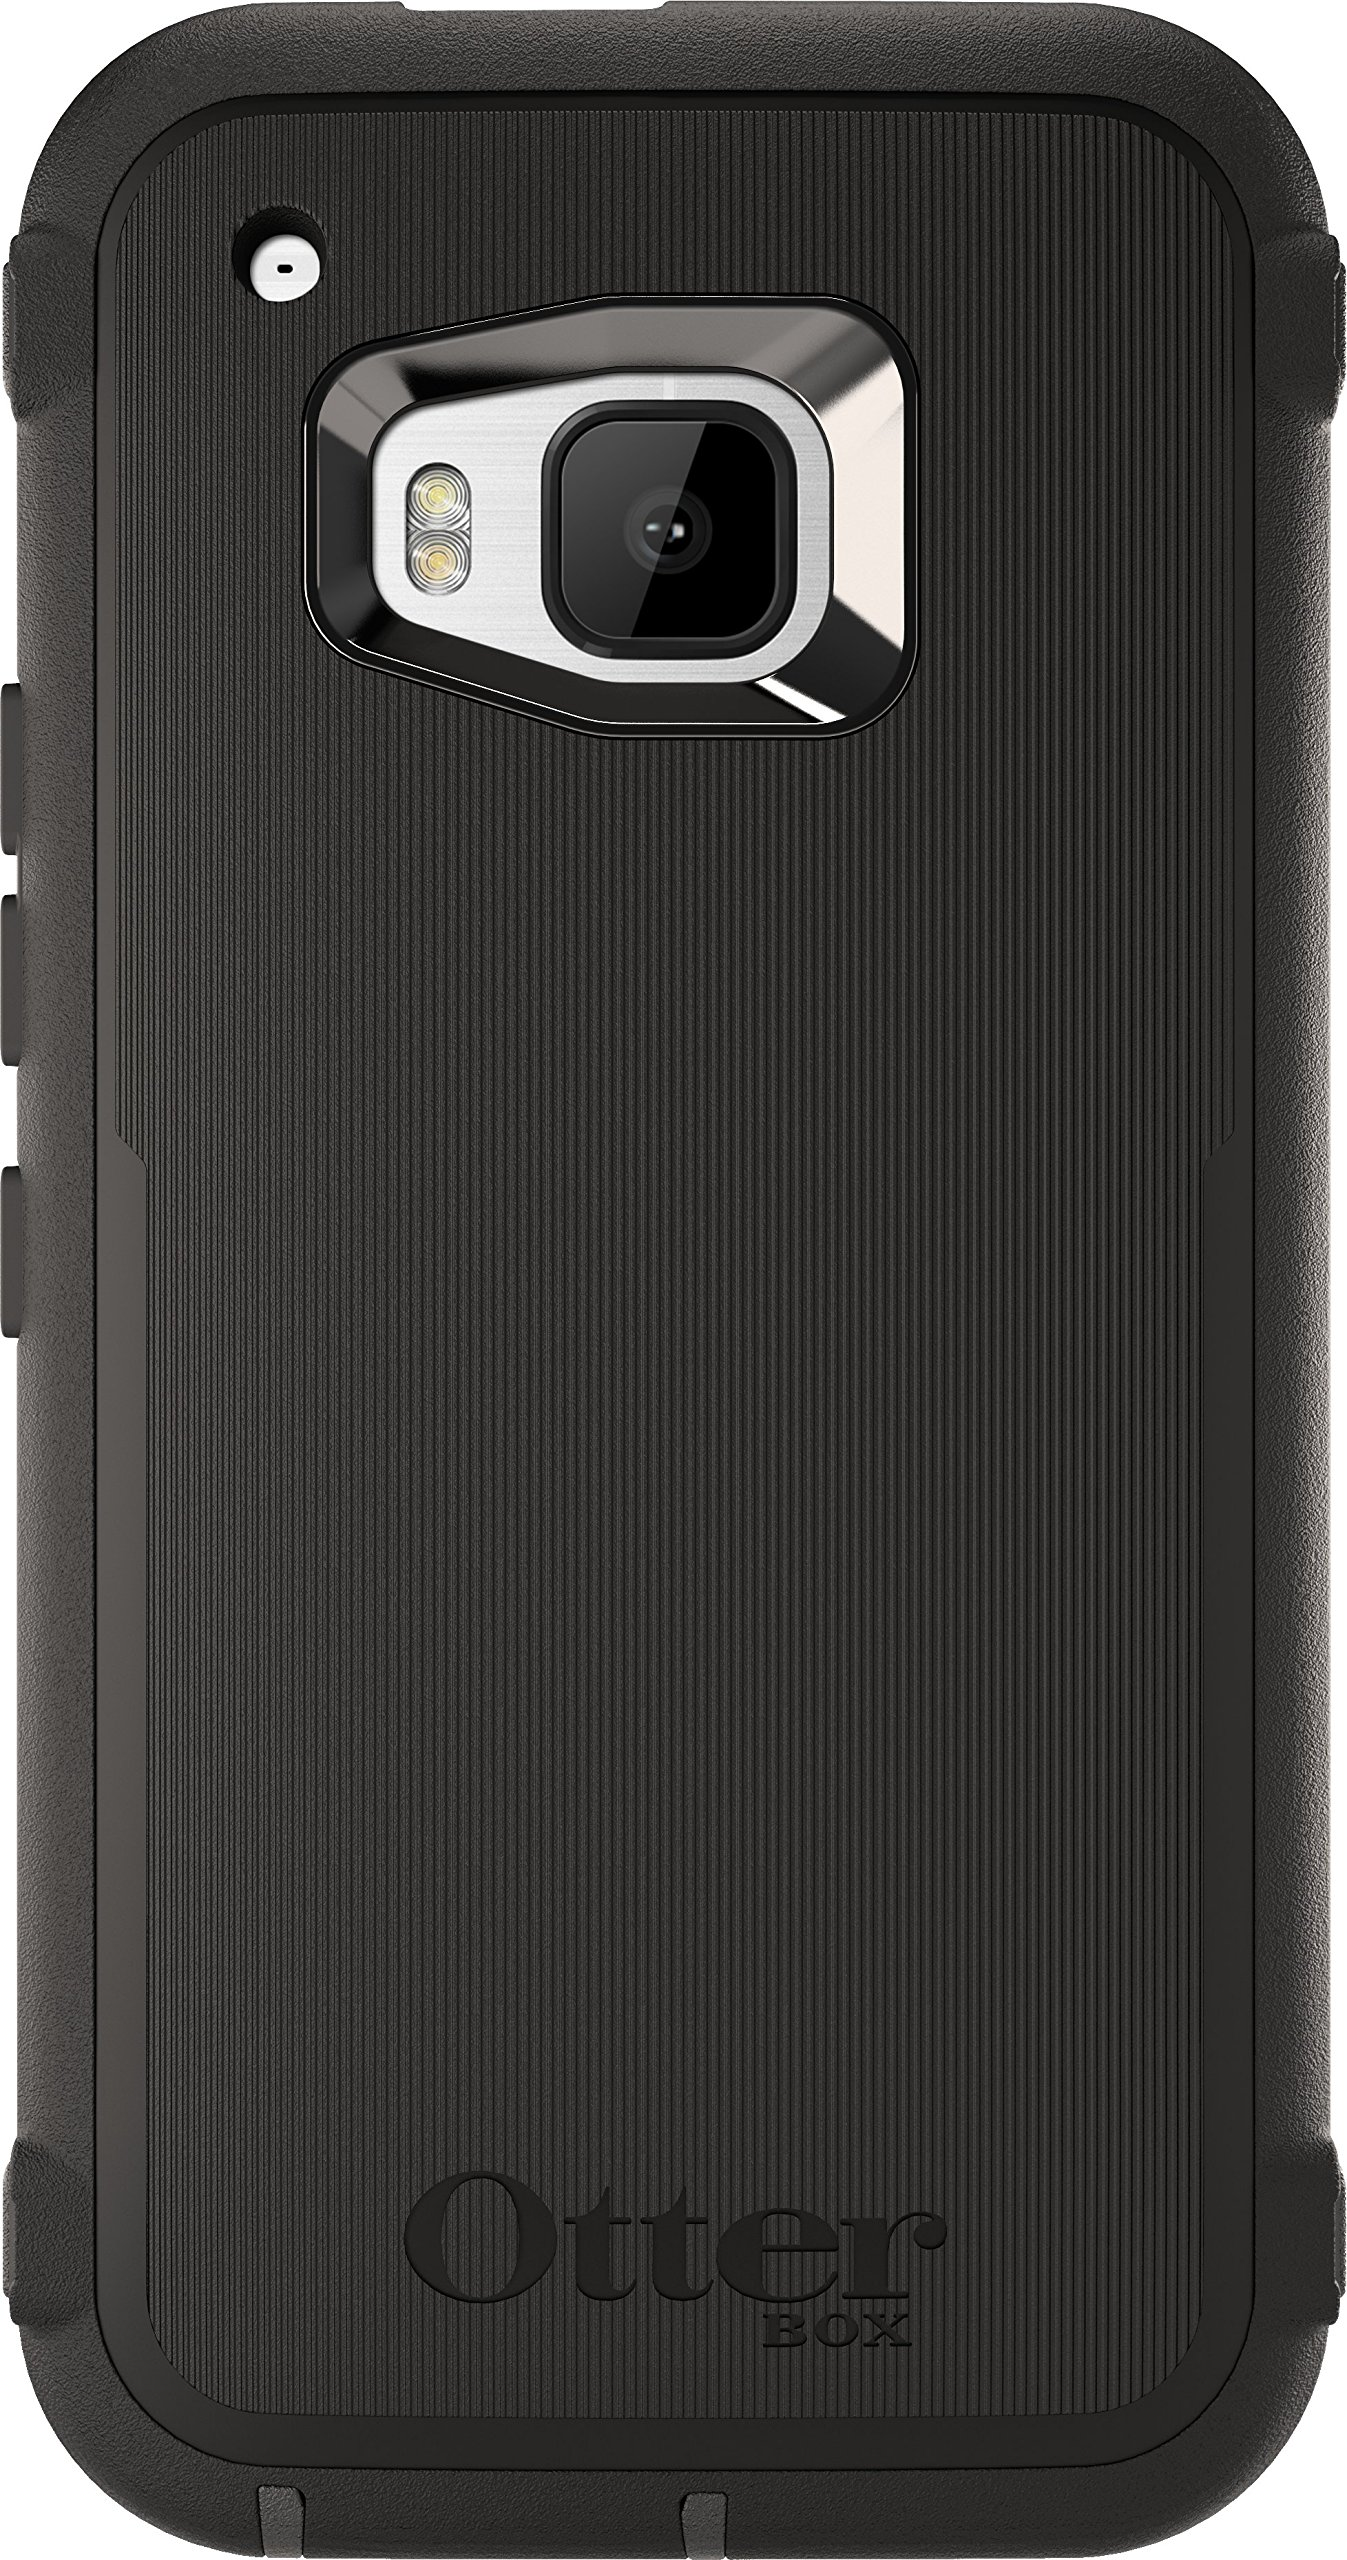 Funda OtterBox Defender HTC One M9 Black Black/Black